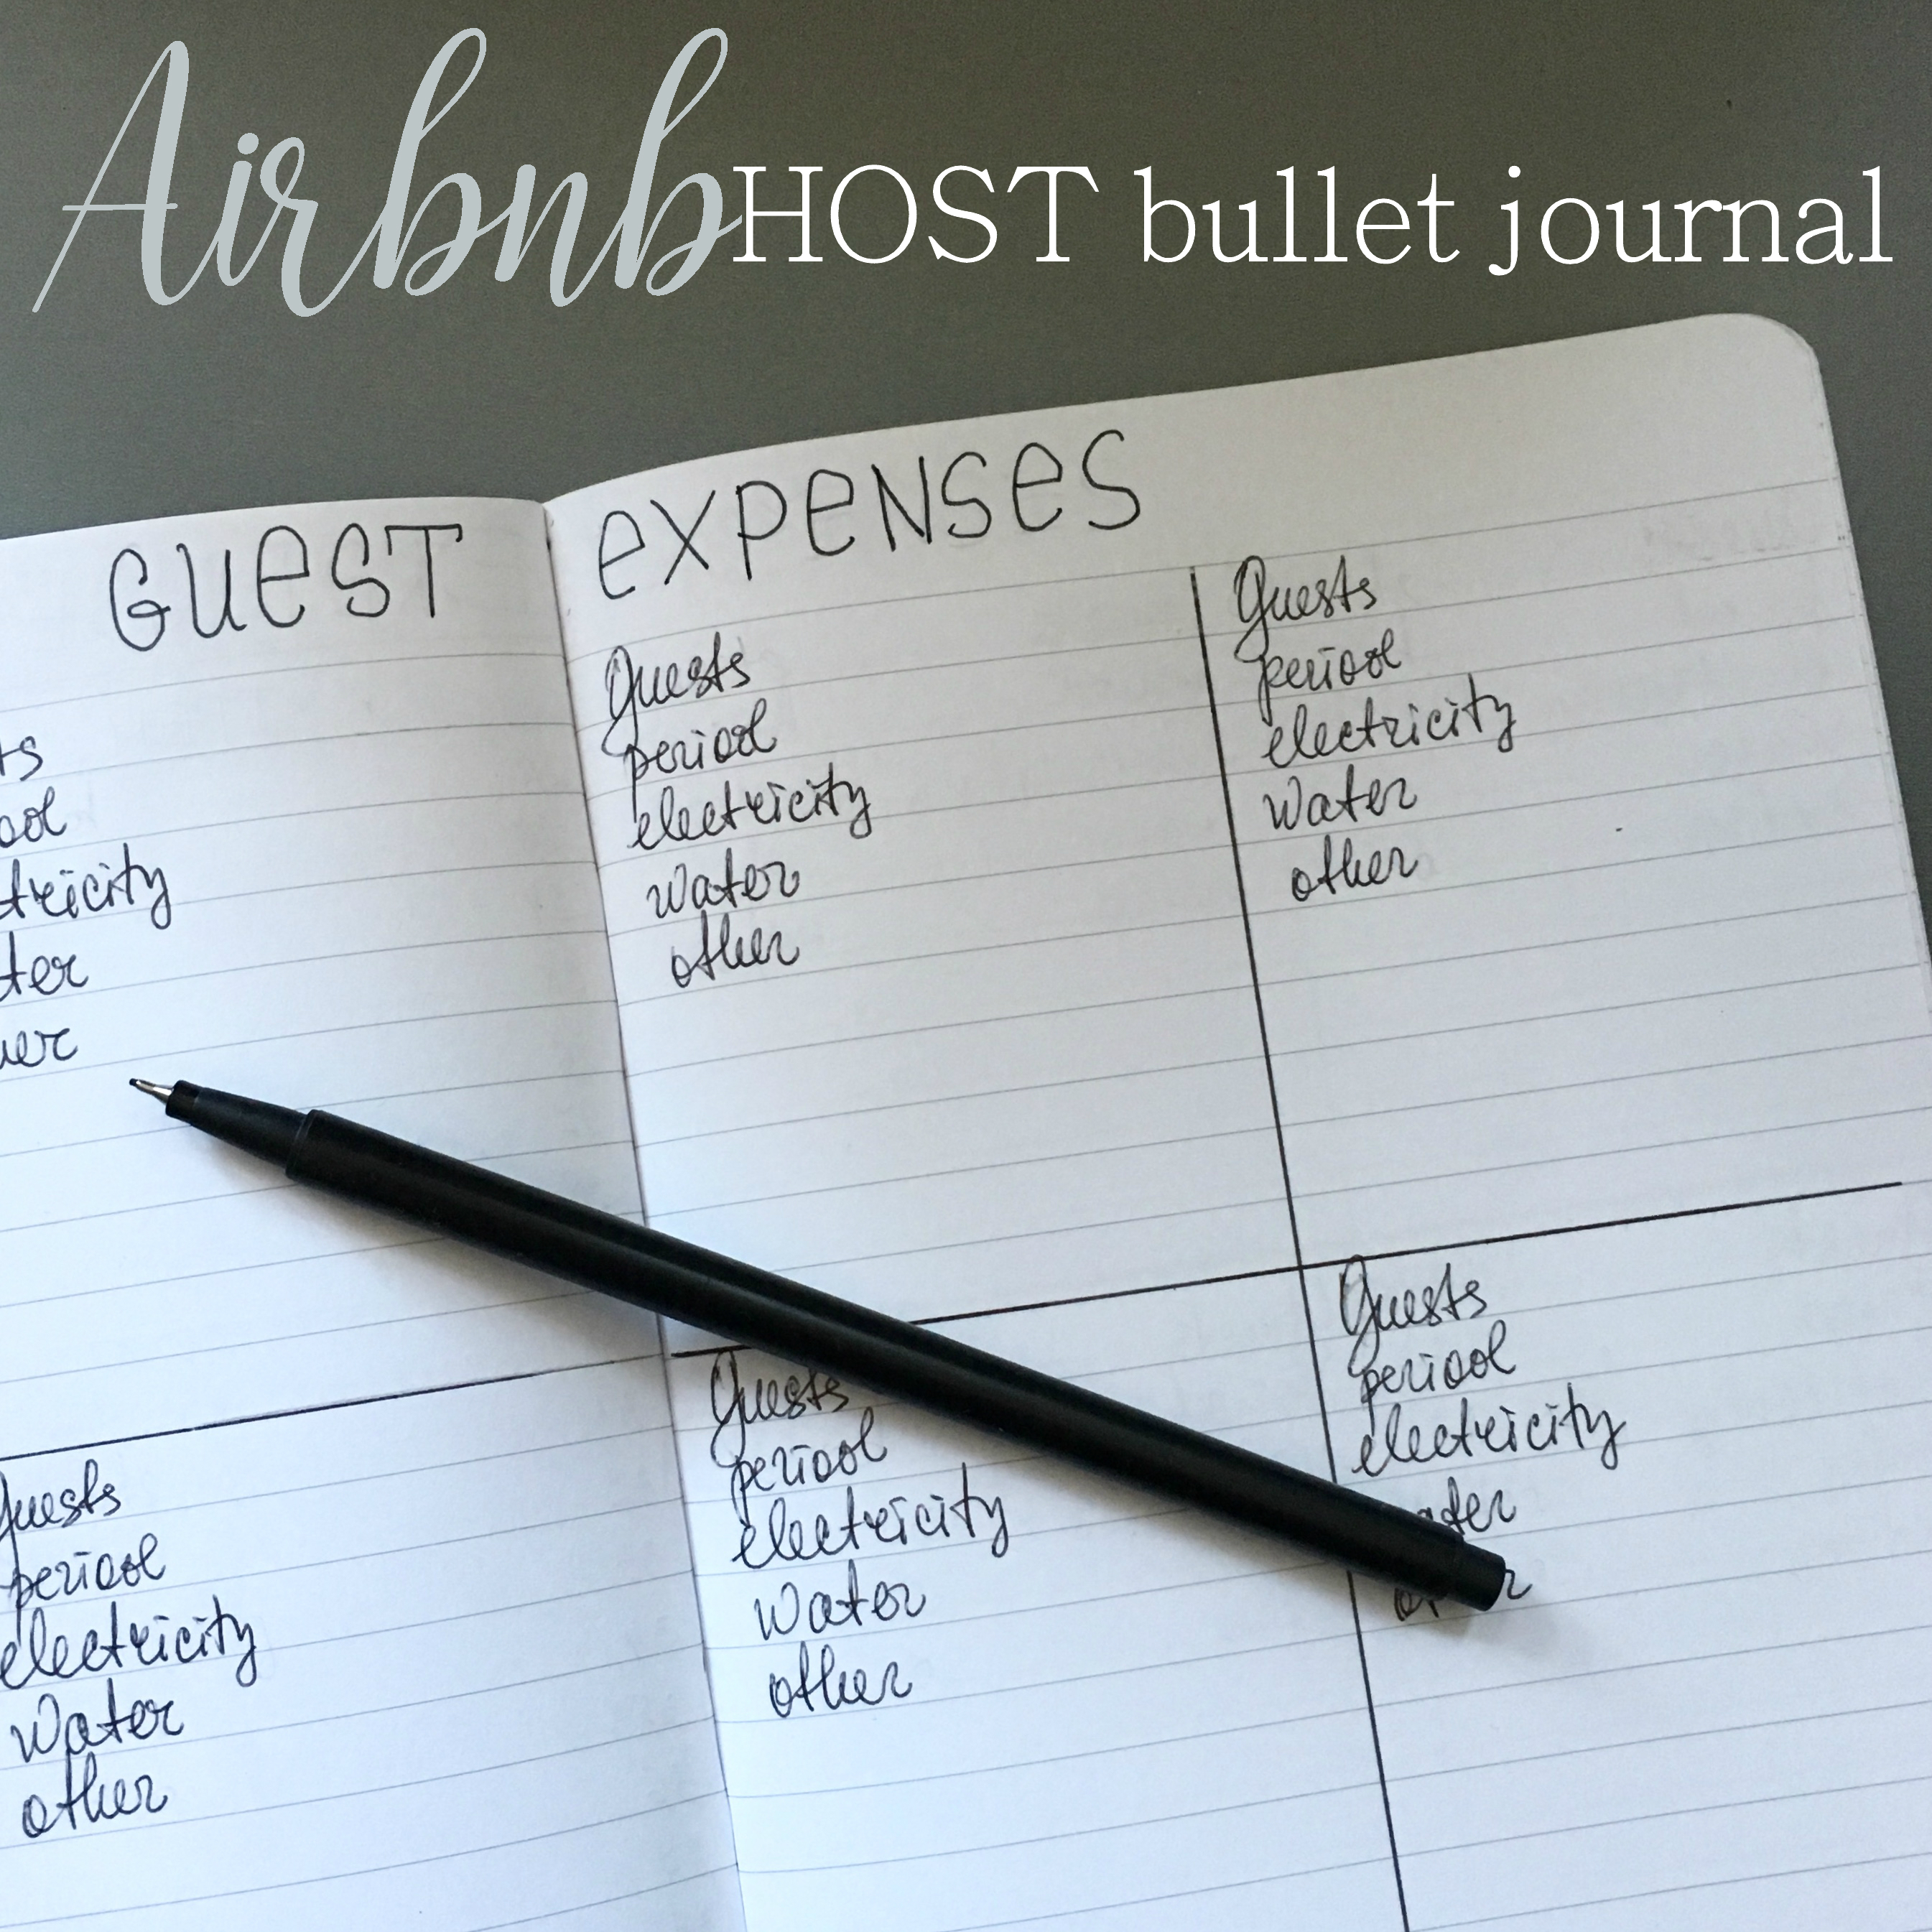 page of a Airbnb host bullet journal - Guest expenses - black ink on white pages